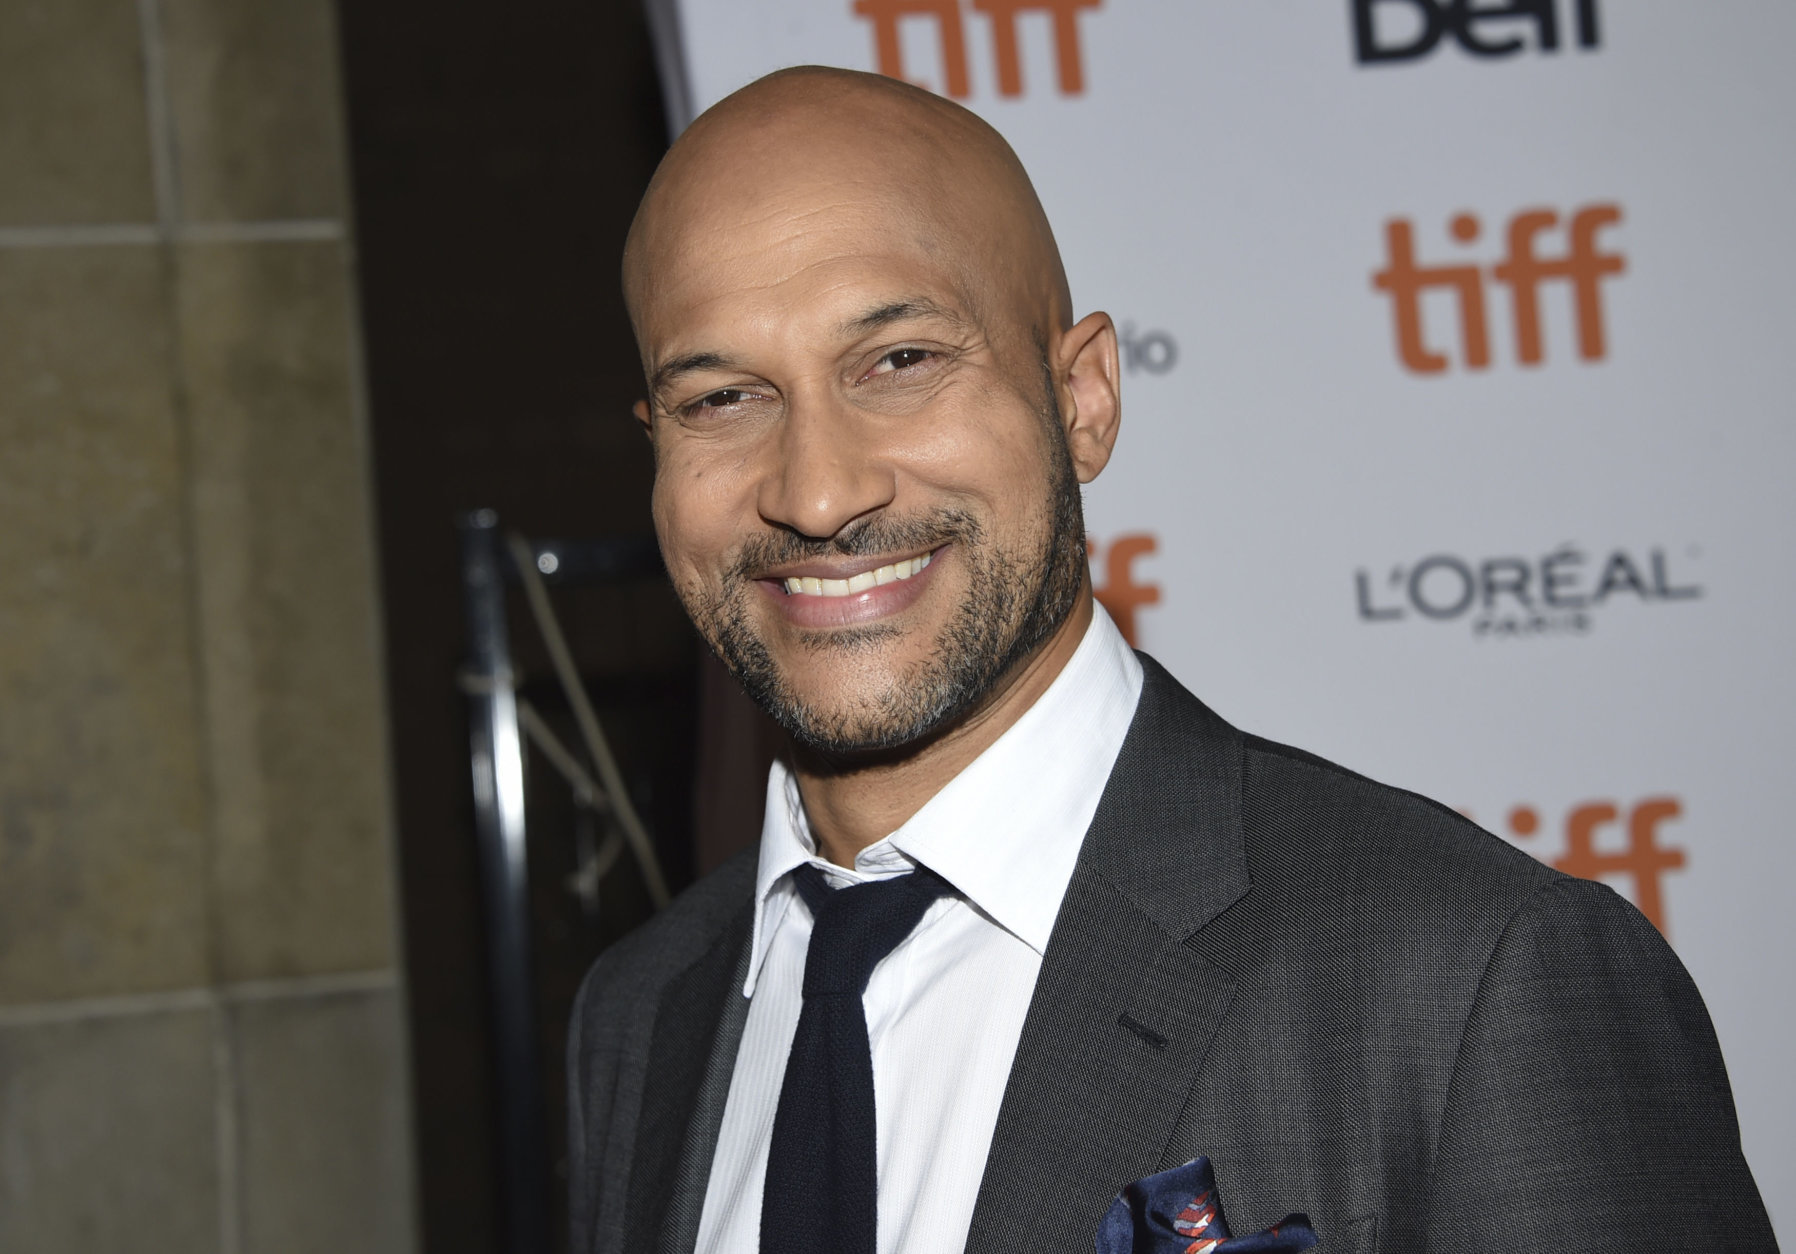 """Actor Keegan-Michael Key attends the premiere for """"The Predator"""" on day 1 of the Toronto International Film Festival, at the Ryerson Theatre on Thursday, Sept. 6, 2018, in Toronto. (Photo by Evan Agostini/Invision/AP)"""